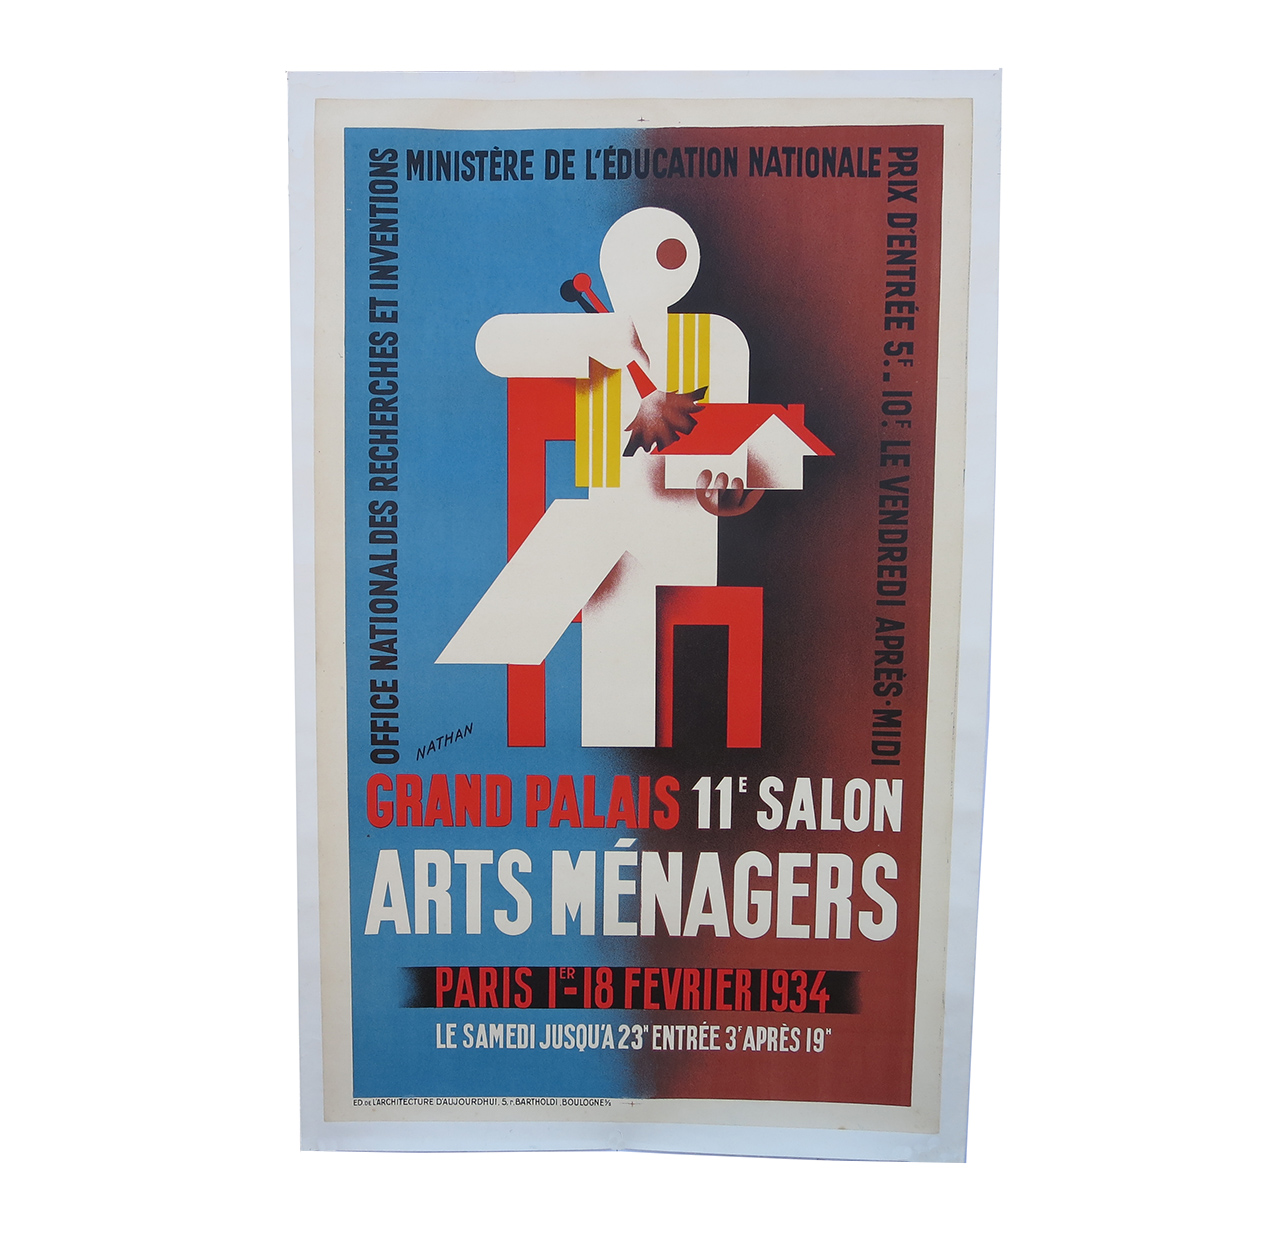 Salon Art Et Deco Paris Arts Menagers Poster Art Deco 1934